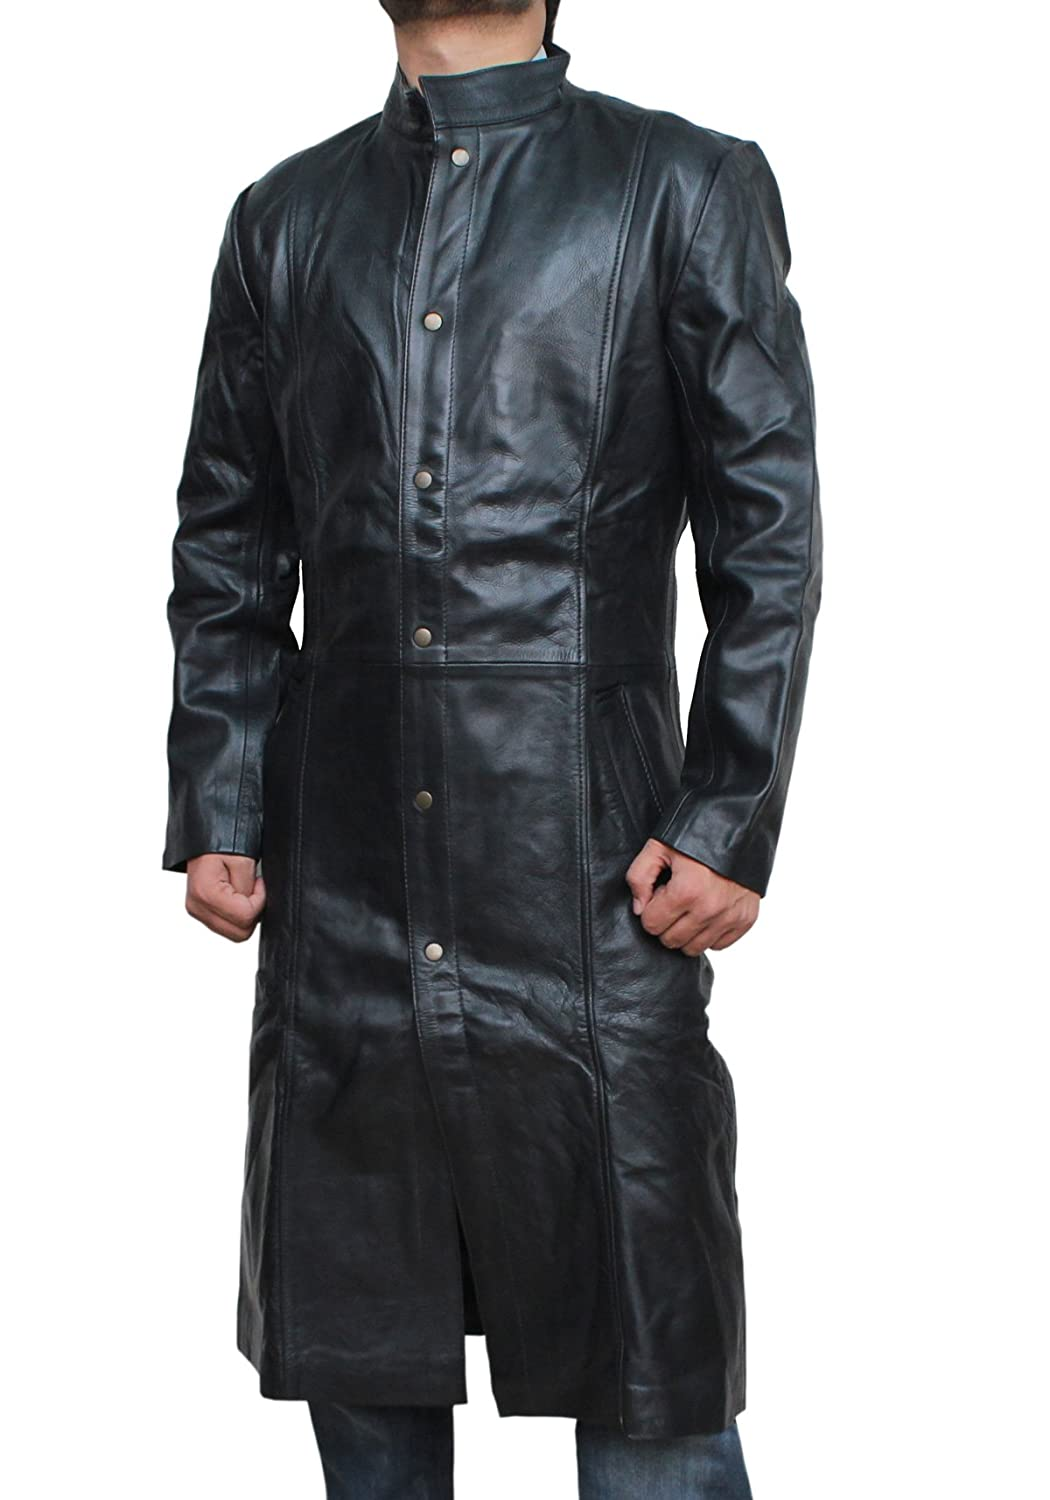 The Avengers: Men's Nick Fury Black Genuine Leather Coat  - DeluxeAdultCostumes.com